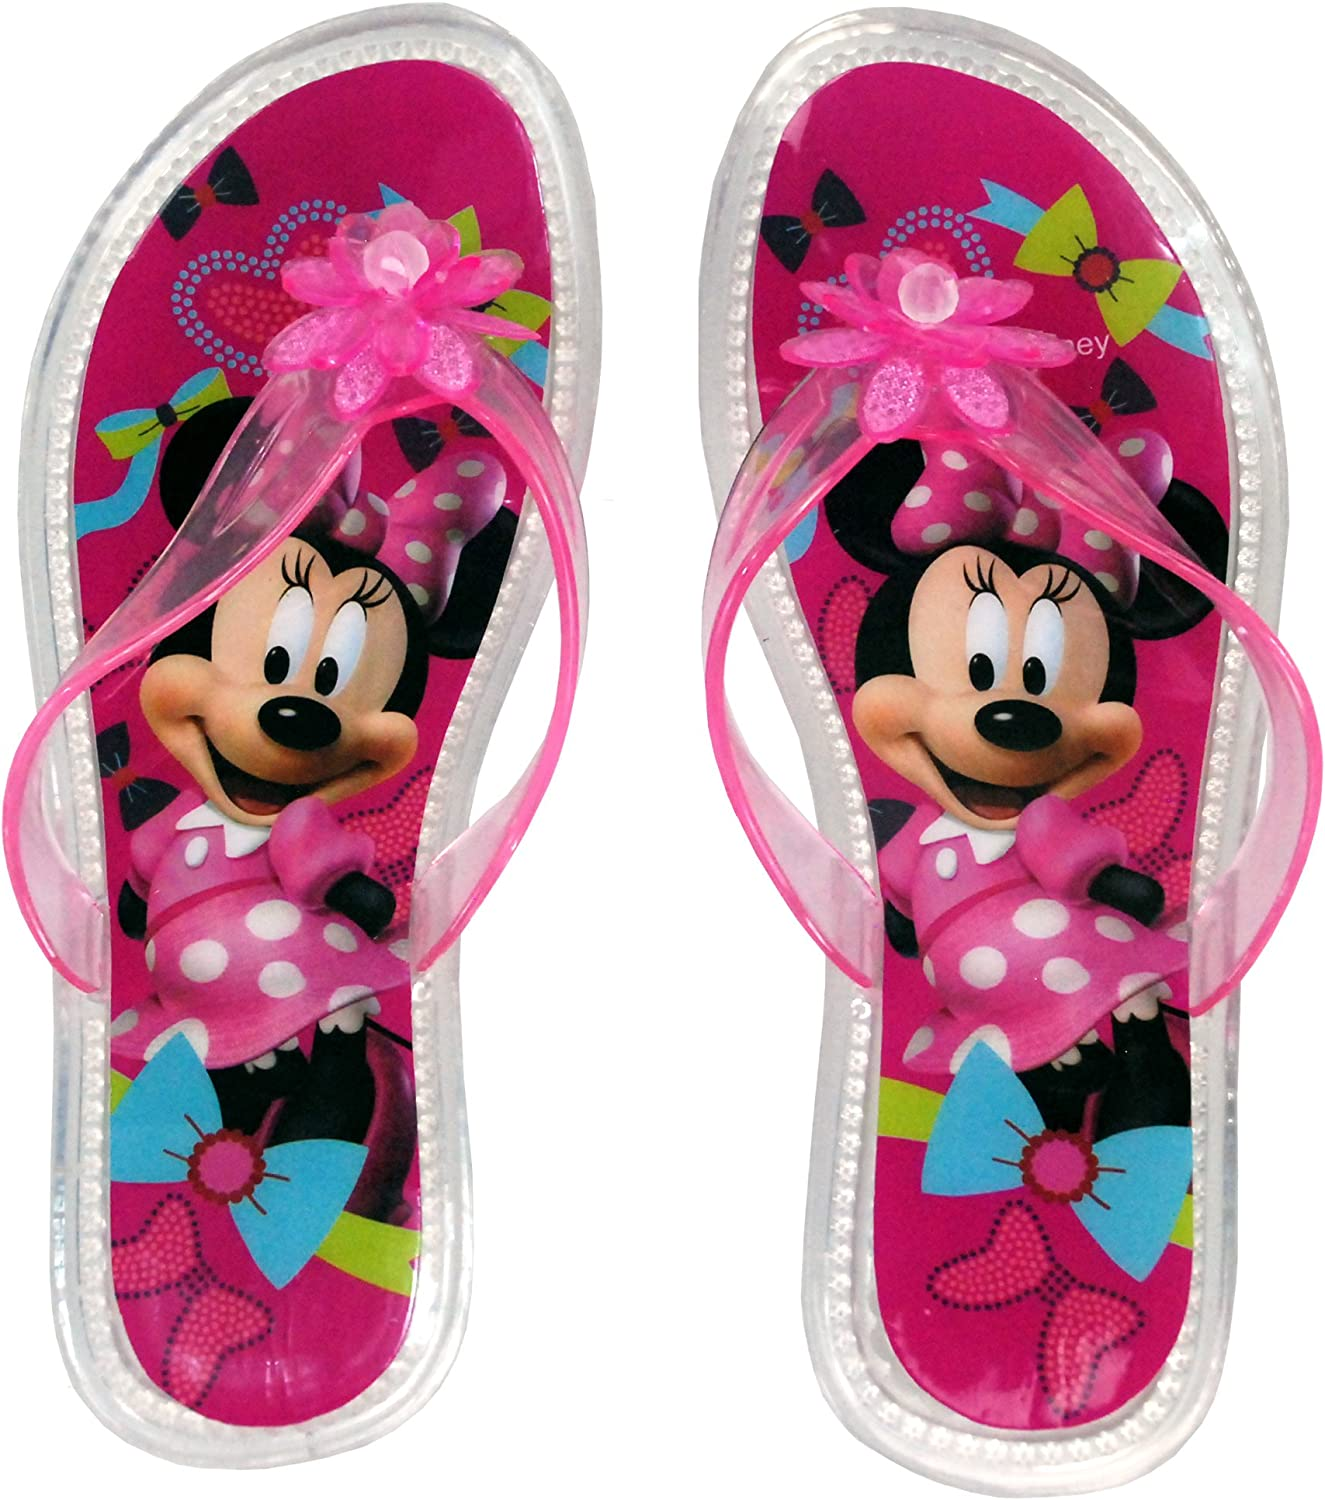 5 Years to 11 Years Disney Genuine Licensed Minnie Mouse Girls Flip Flops Sandals Swimming Pool Beach Slippers Shoes UK Sizes